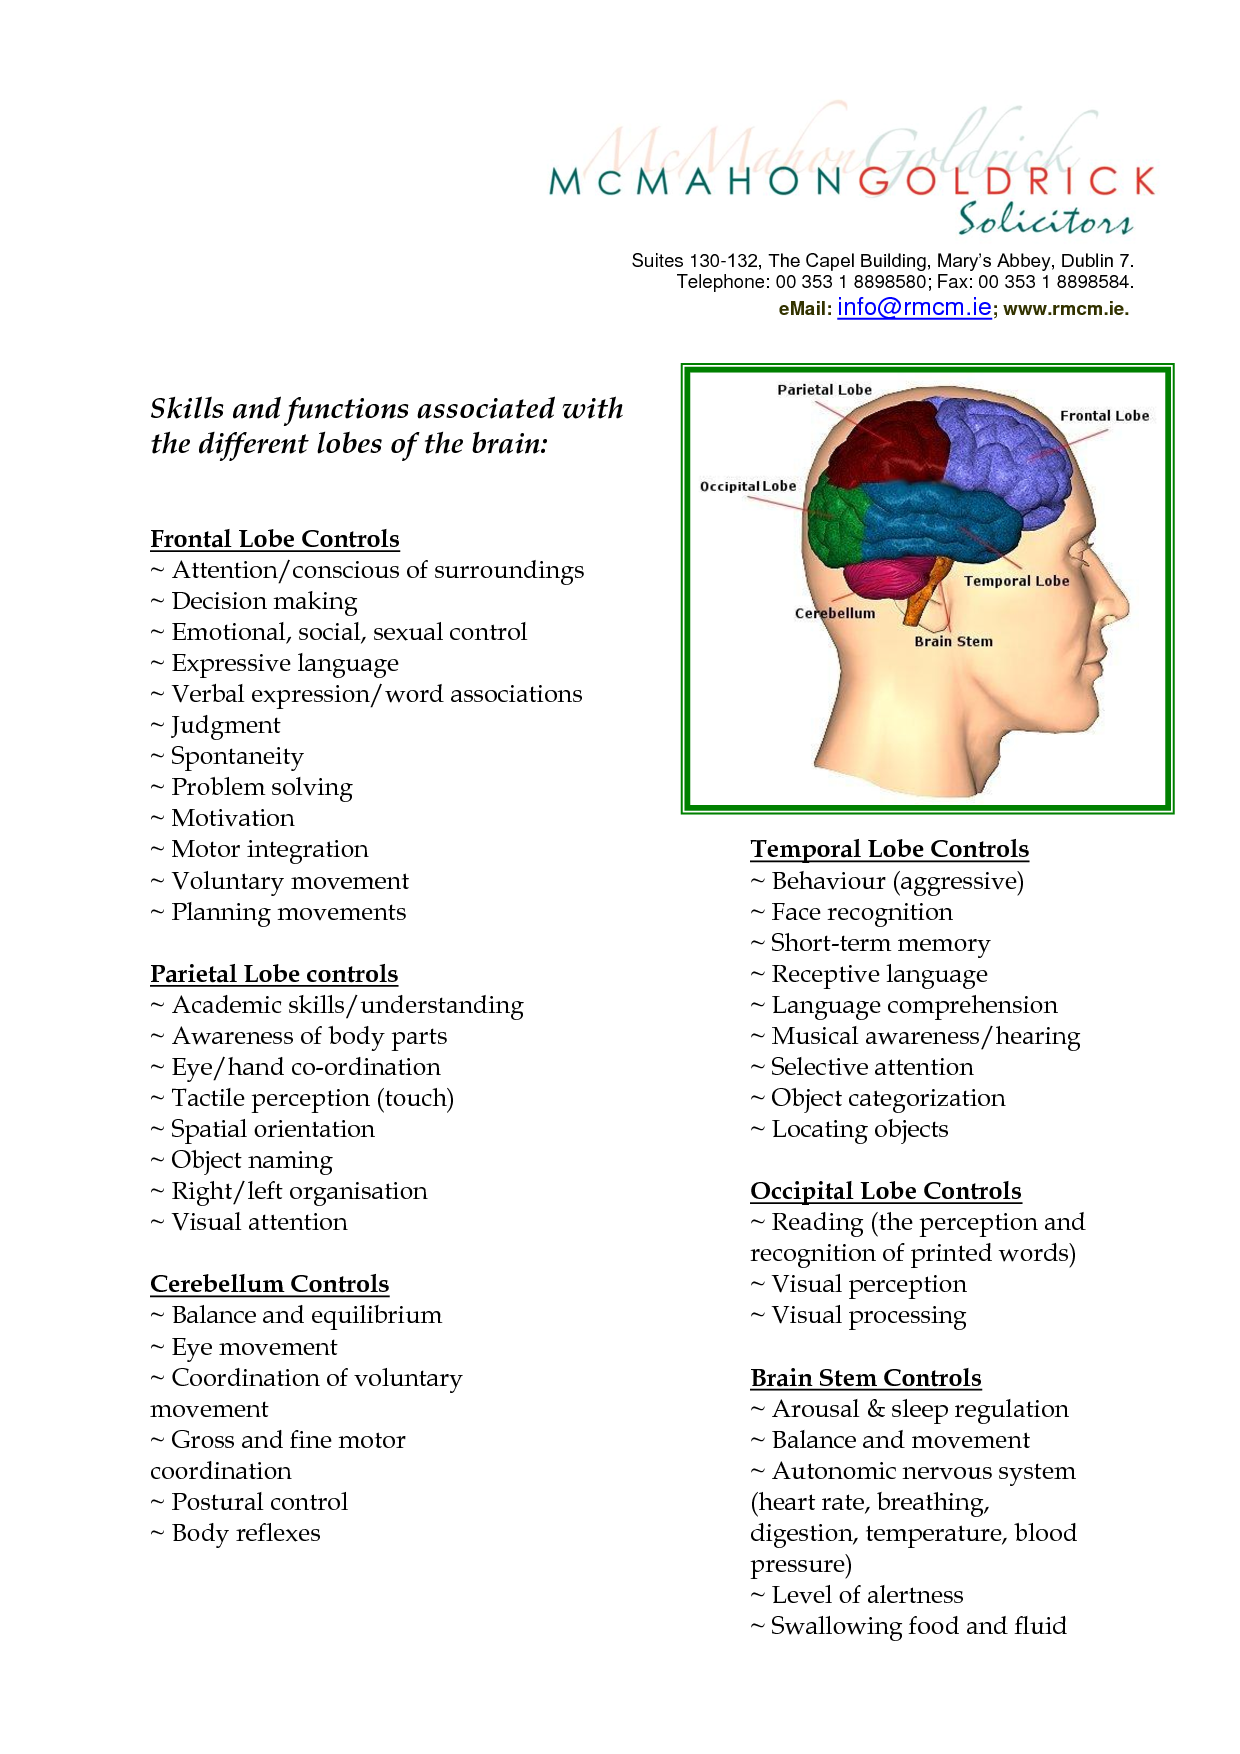 clip art lobes of the brain and their functions | Skills and ...